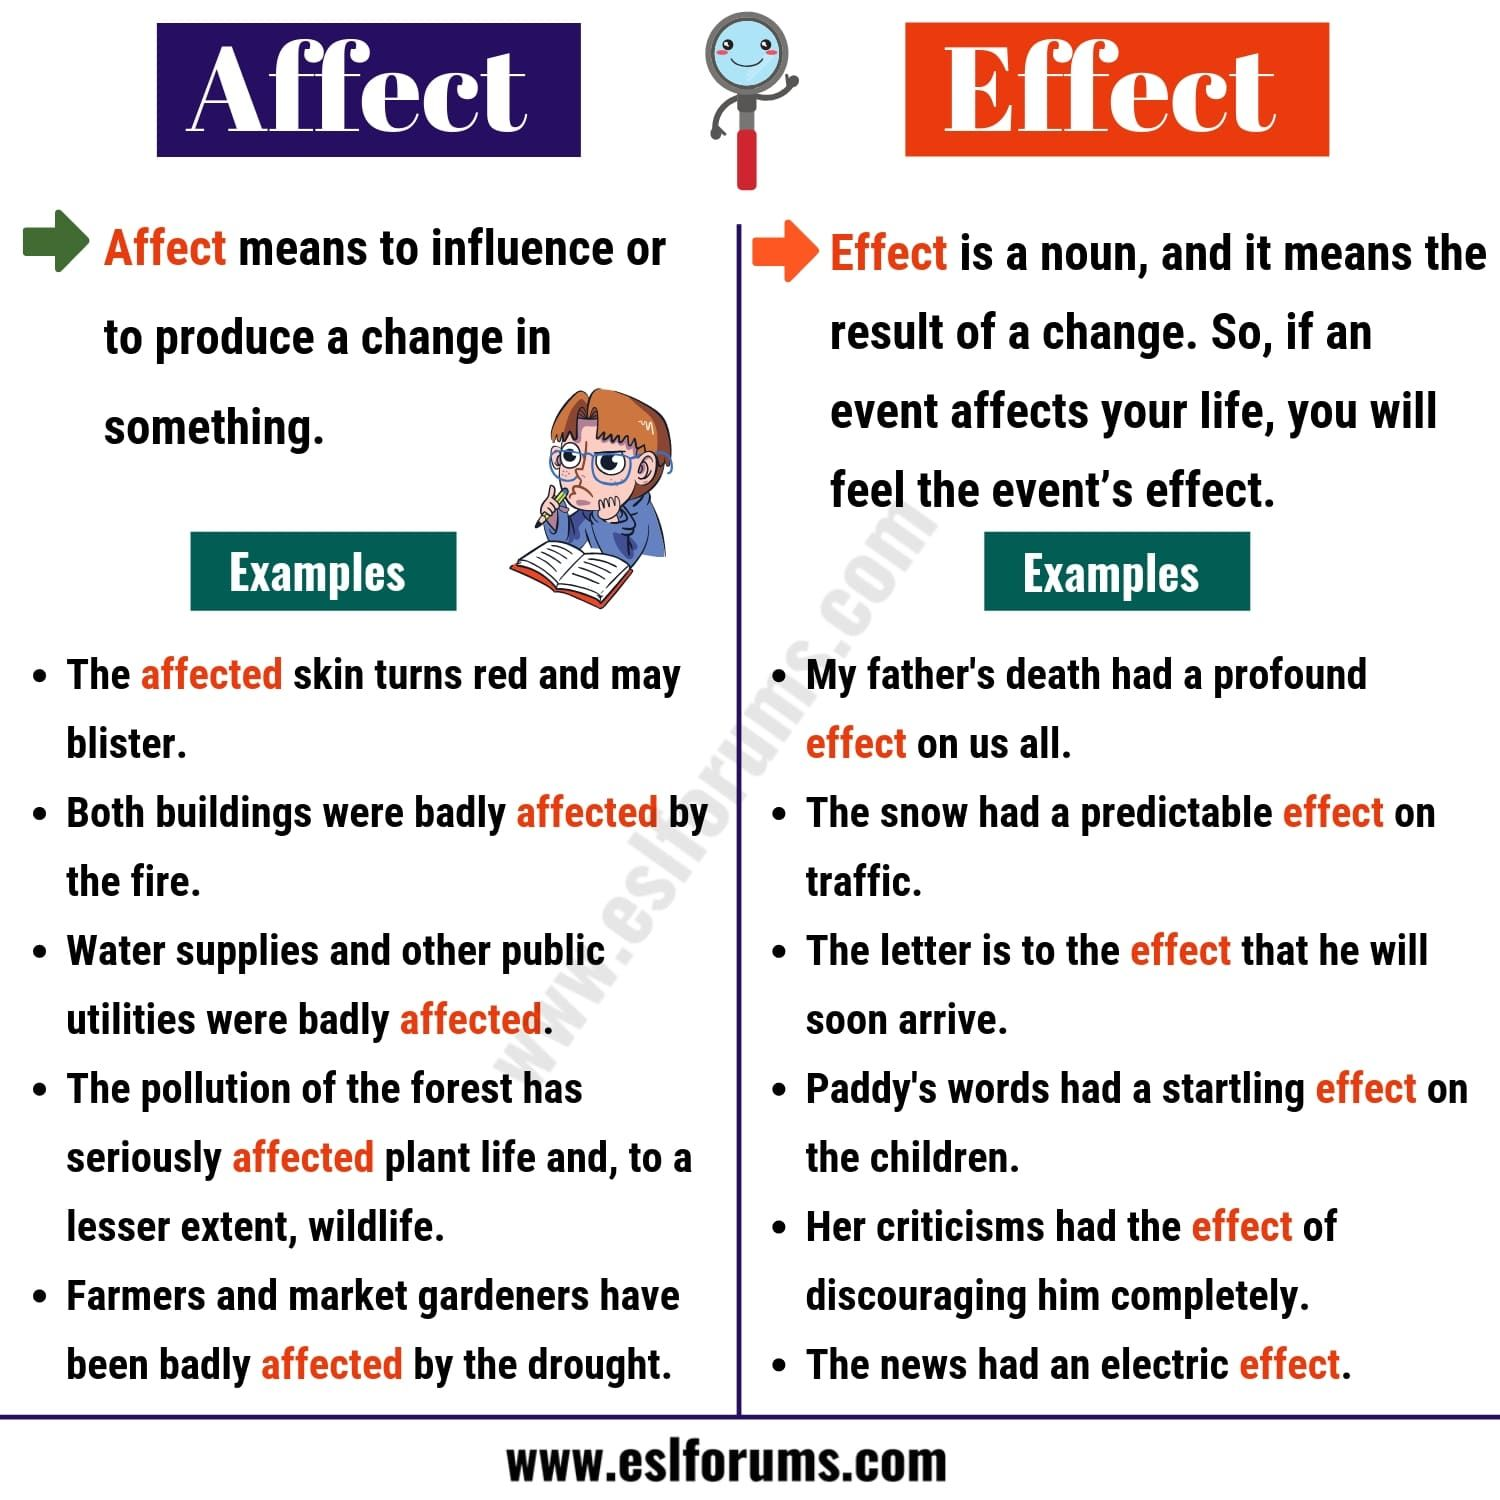 medium resolution of AFFECT vs EFFECT Difference: It's not As Hard As We Think! - ESL Forums    Linking words